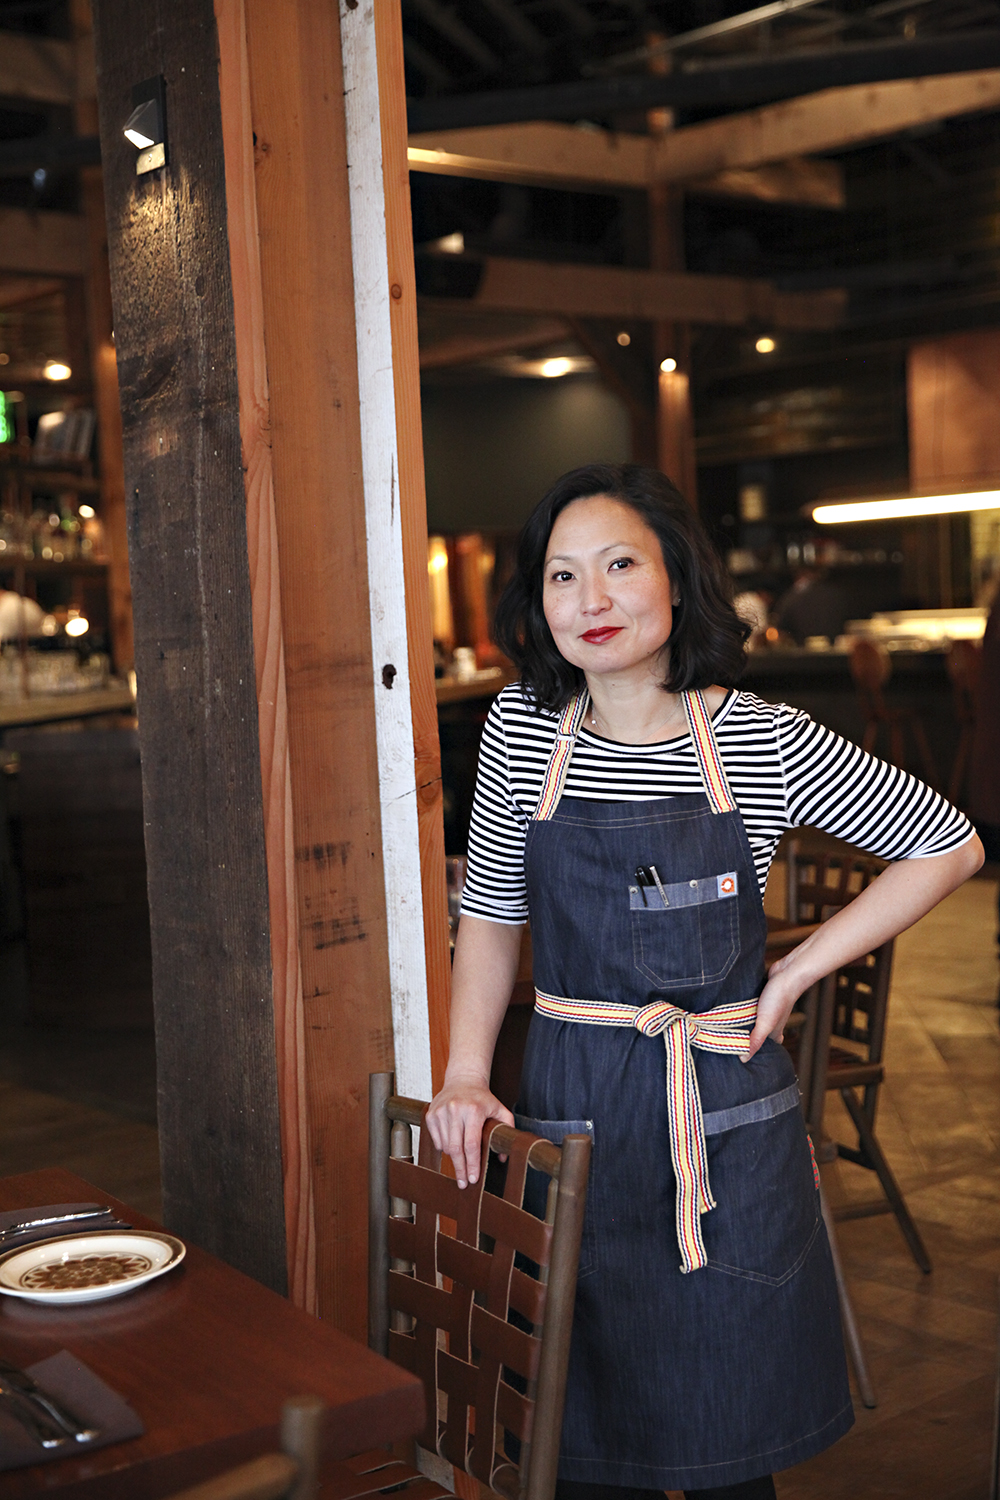 Ann Kim's New Uptown Restaurant Aims to Serve Tortillas That Will Make Eaters Weep With Joy